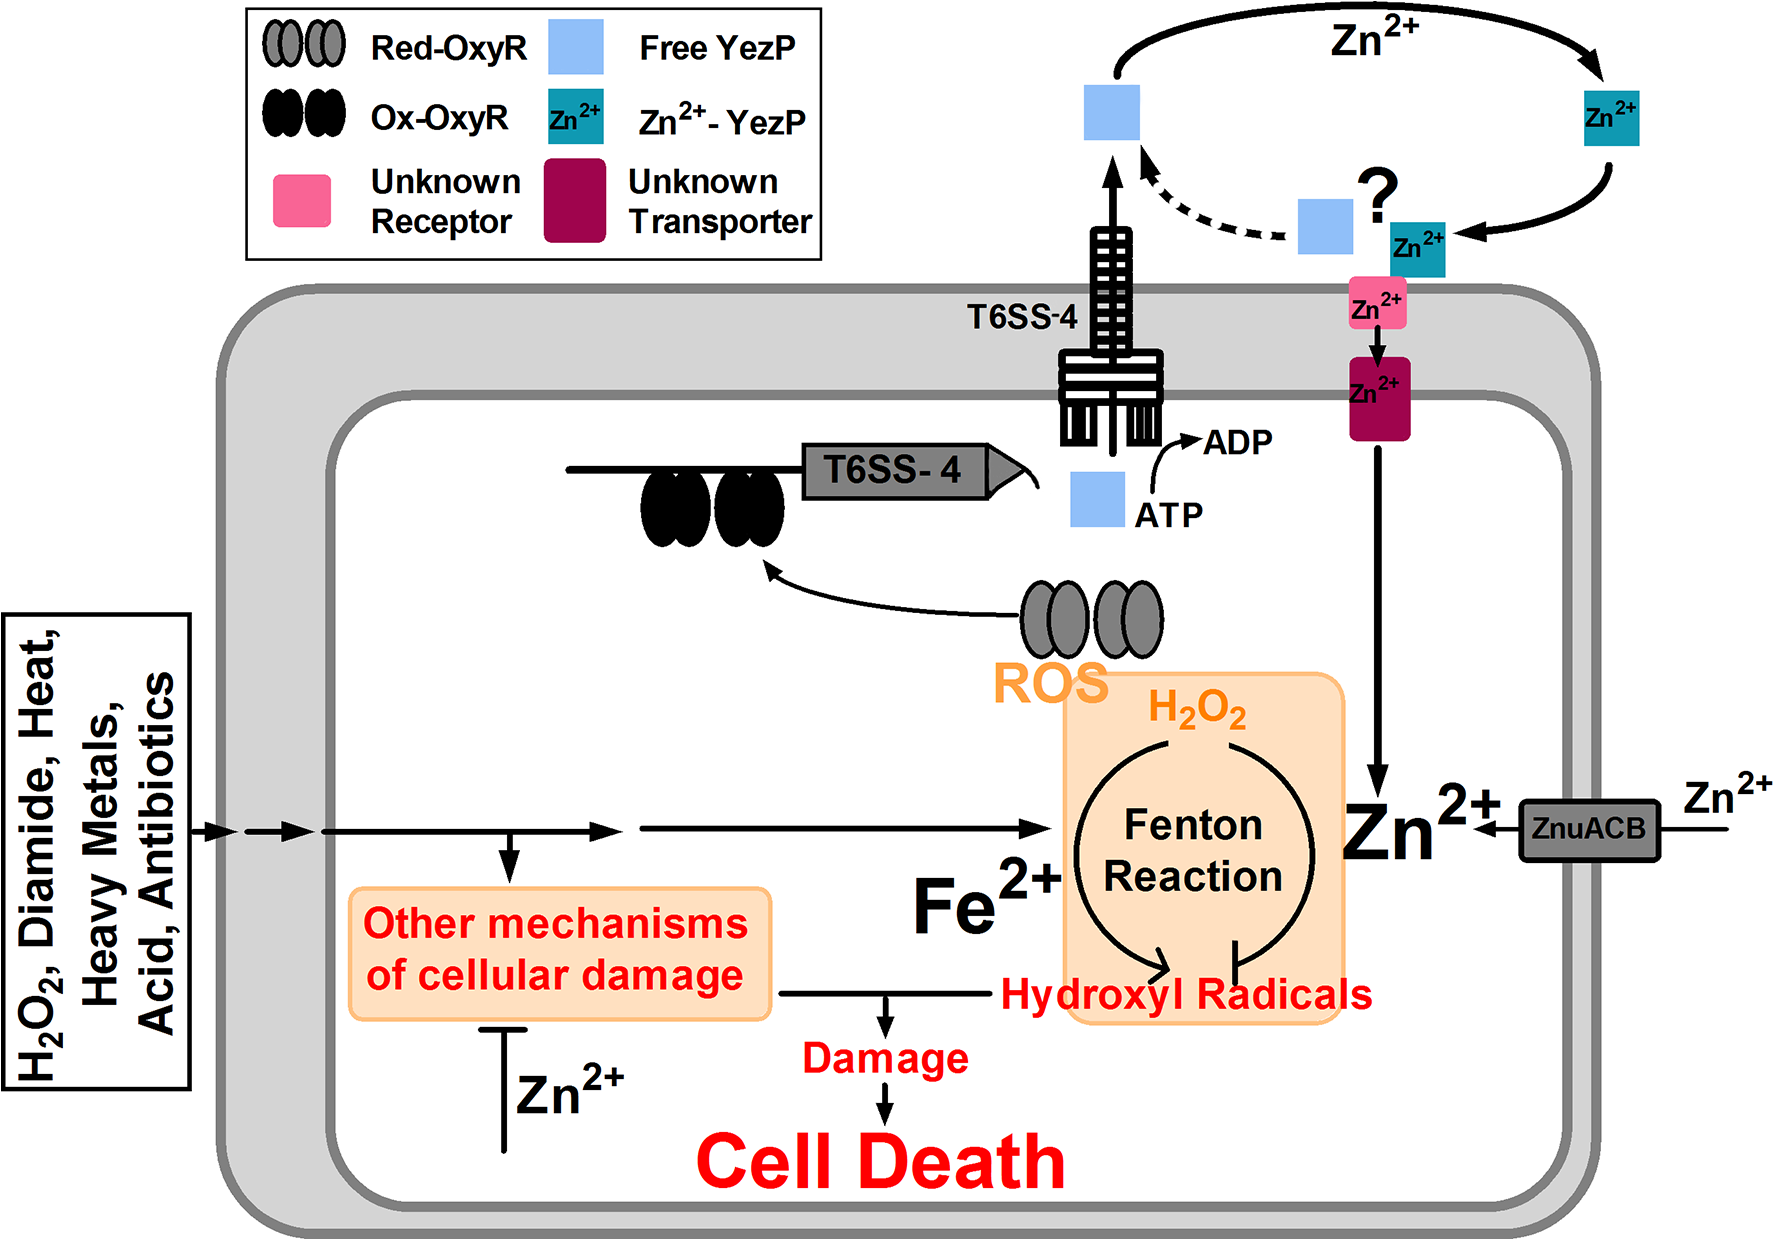 Model of T6SS-4-facilitated Zn<sup>2+</sup> transportation and oxidative resistance in <i>Yptb</i>.